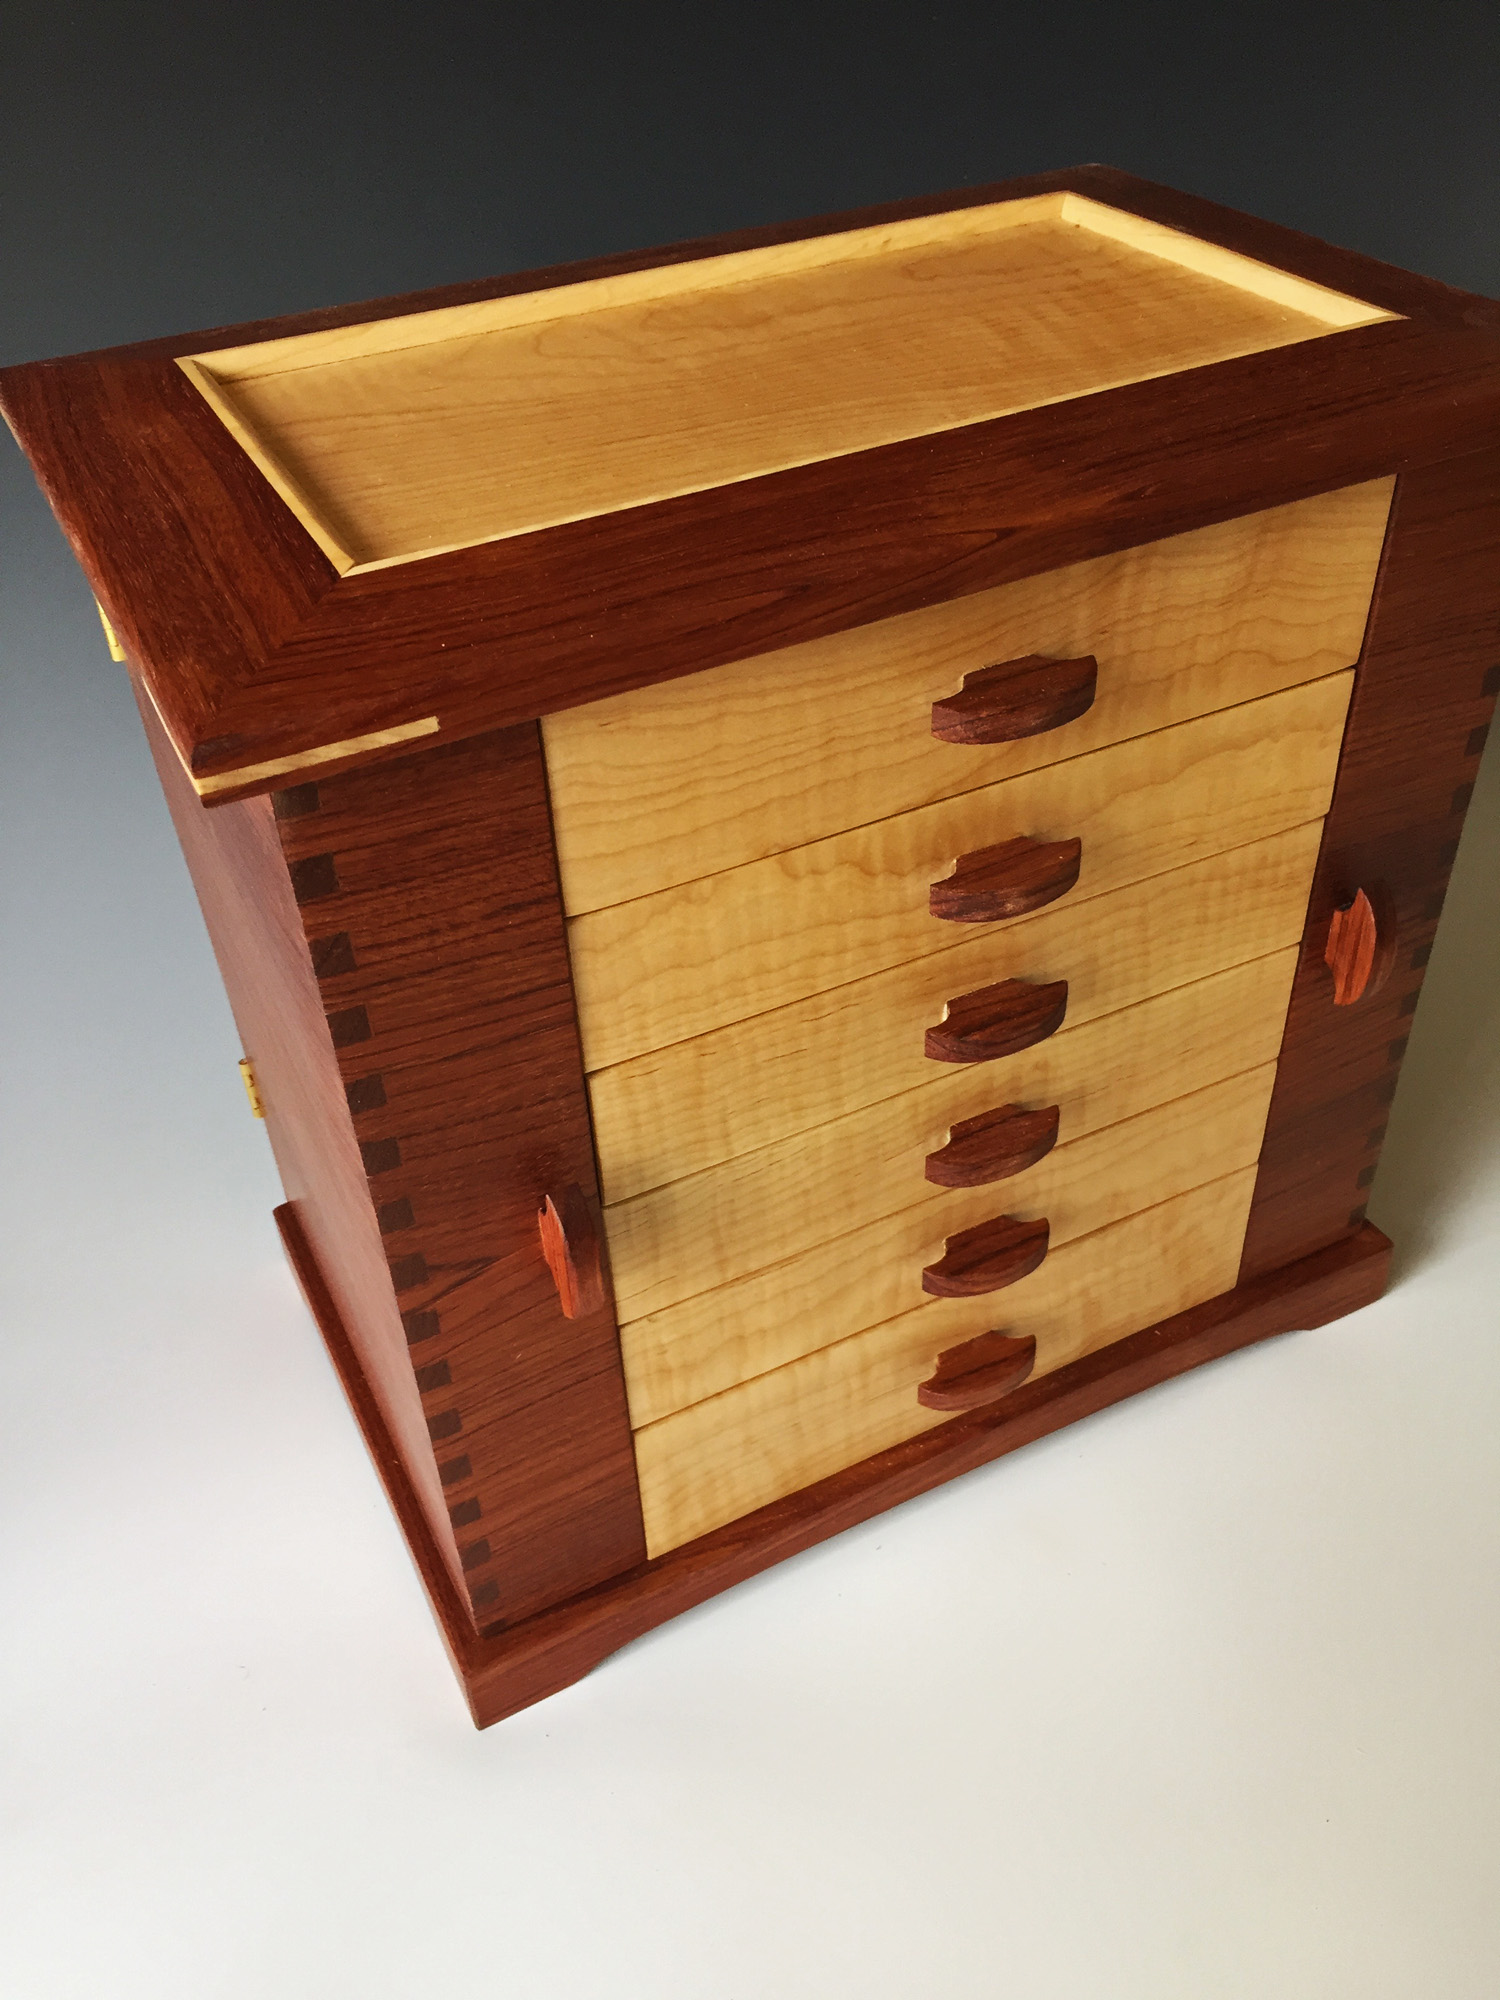 Photo of one of my large jewelry boxes, the Swingdoor, shown in bubinga redwood and curly maple wood drawers.